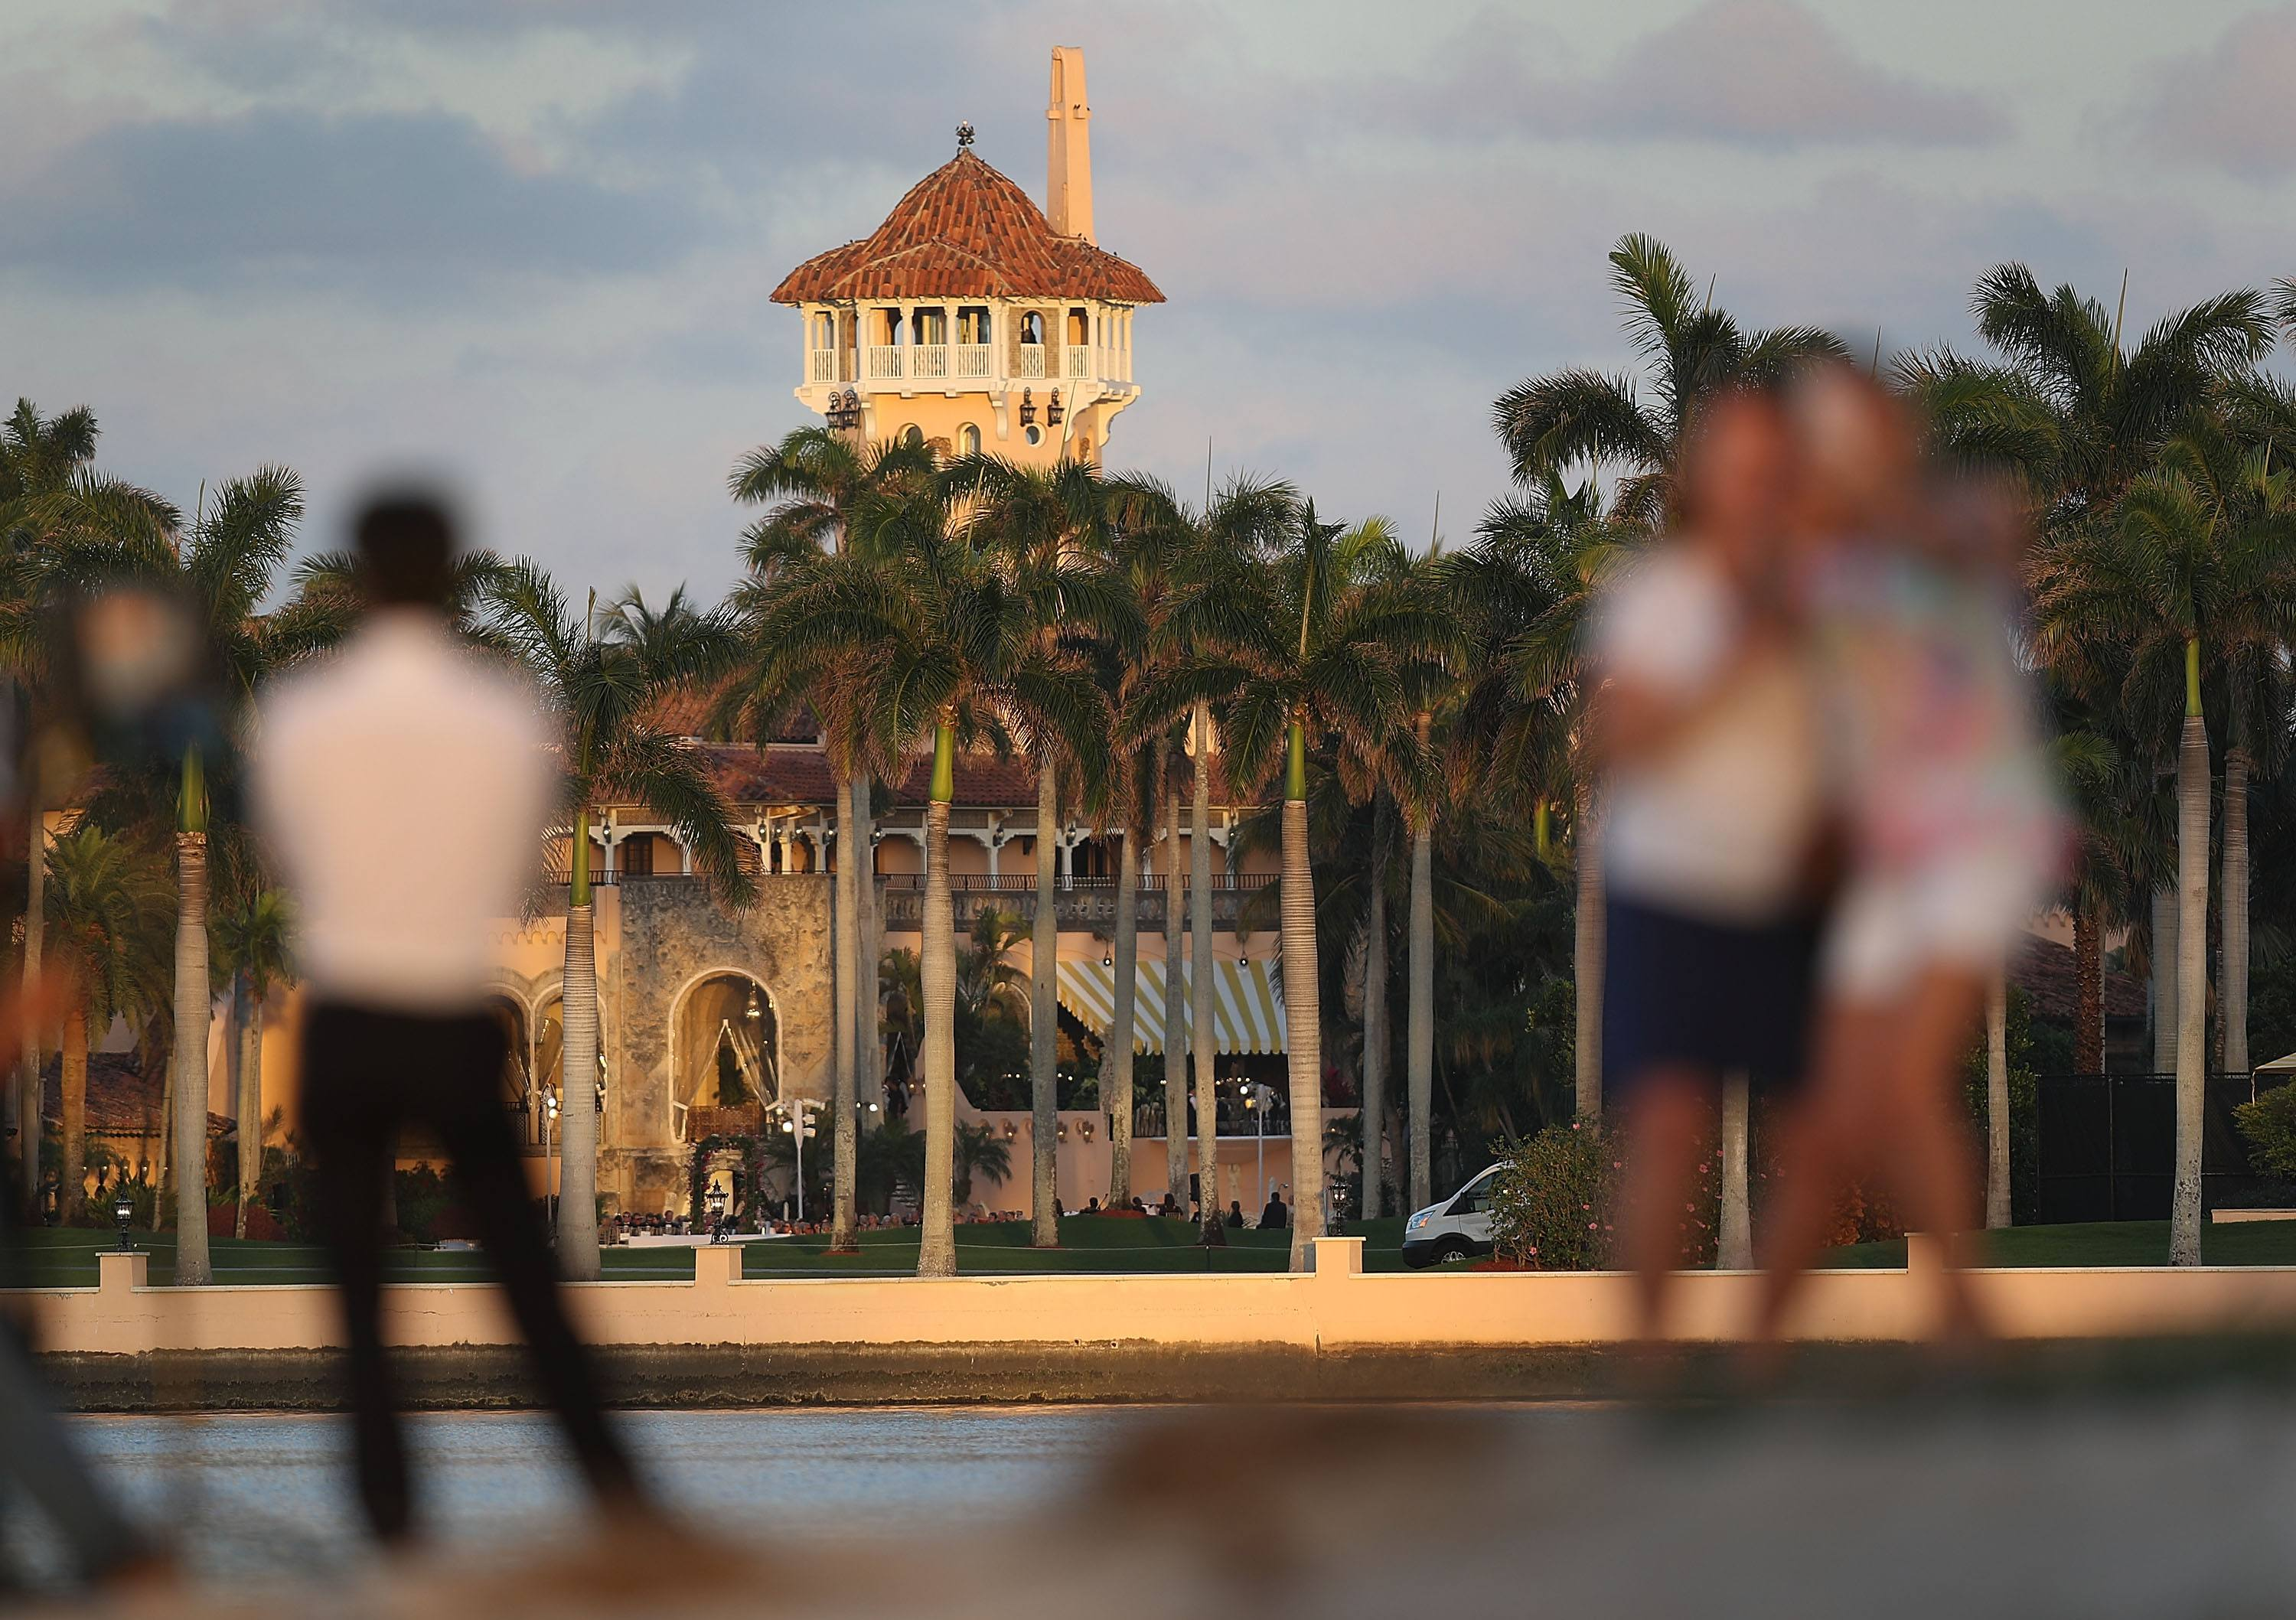 the mar a lago resort, which donald trump owns in florida